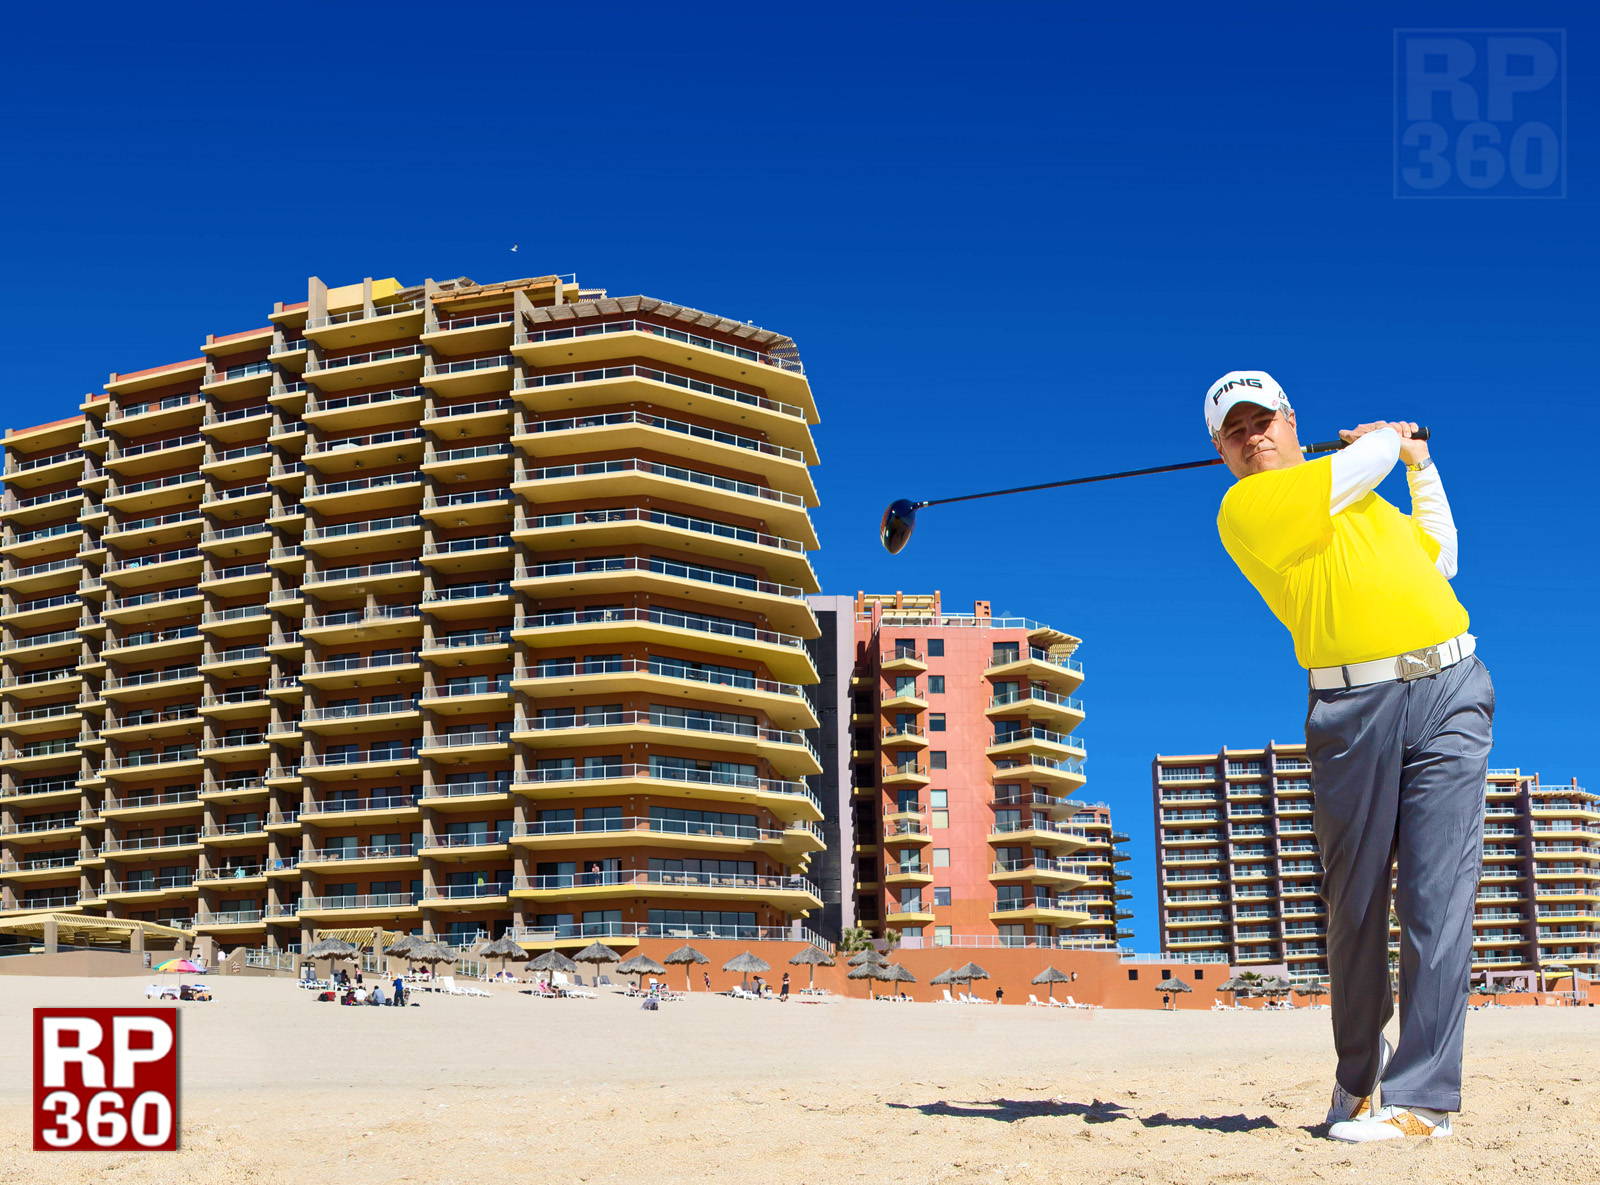 golf in rocky point, 7th anniversary golf tournament at las palomas beach & golf resort, Puerto Peñasco, Sonora